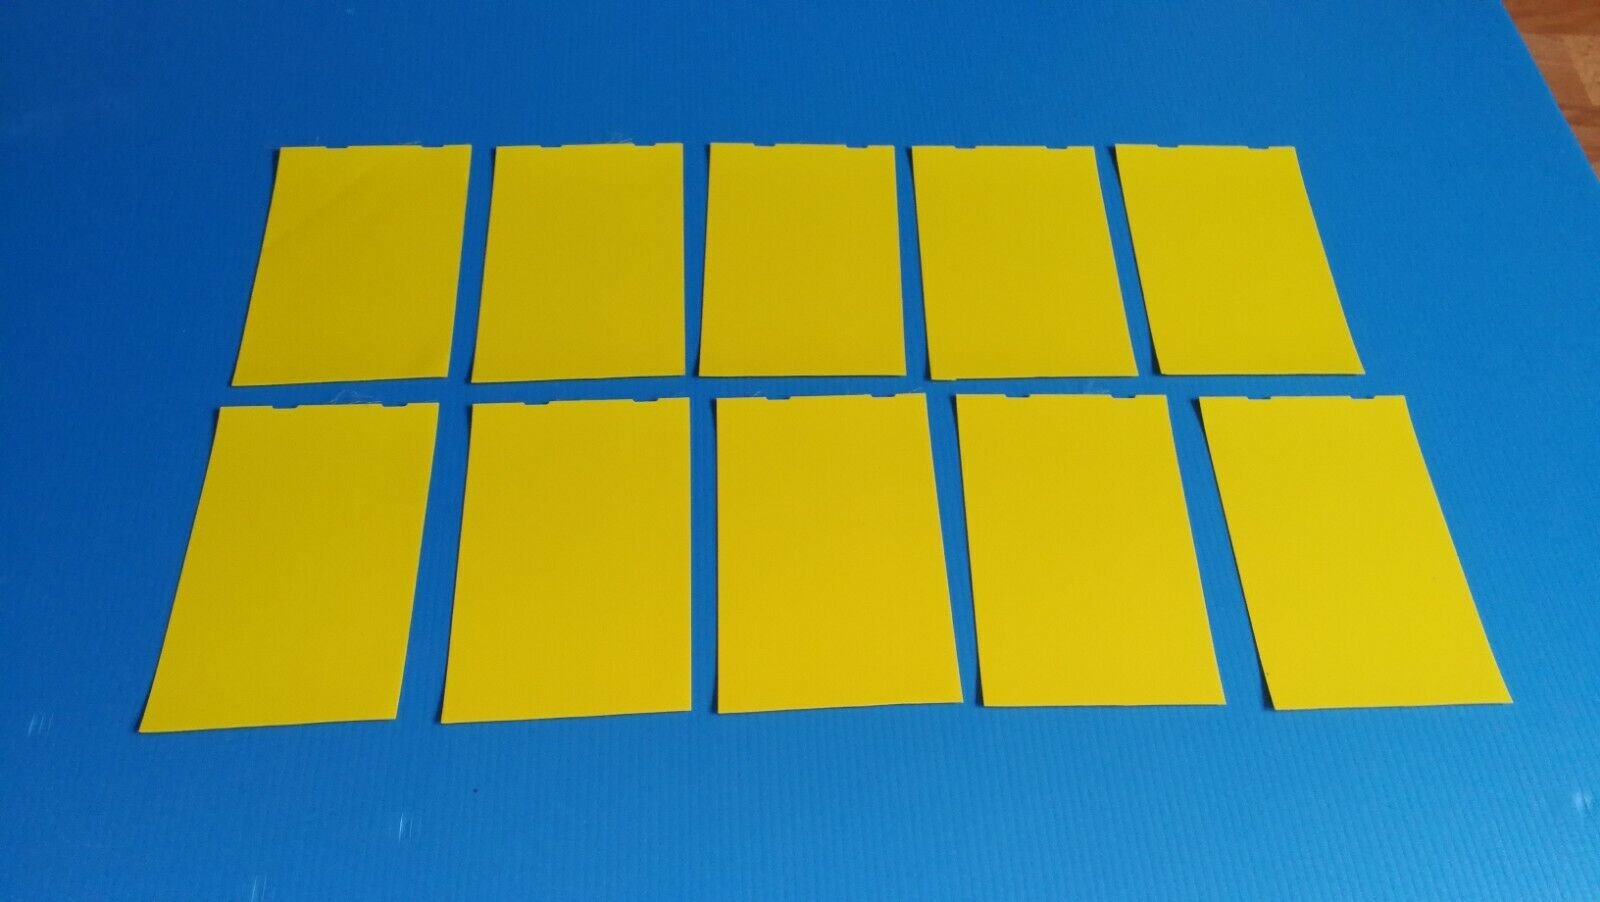 Paddle board SWIMMING POOL BOAT HOT TUB.Patch material X 10 yellow